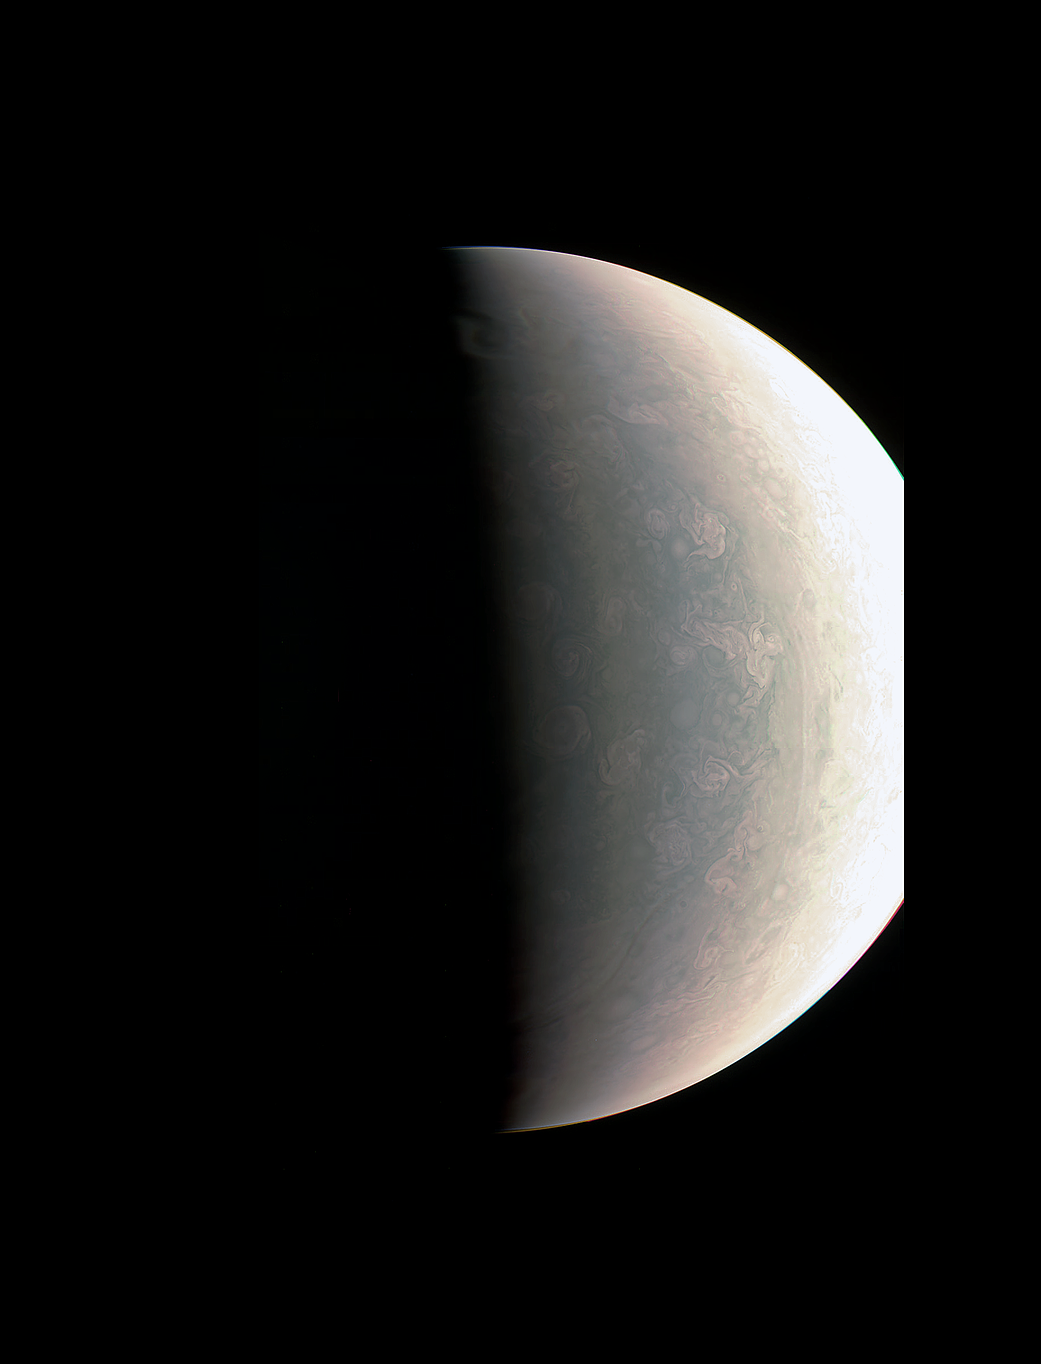 Jupiter's polar cloud tops